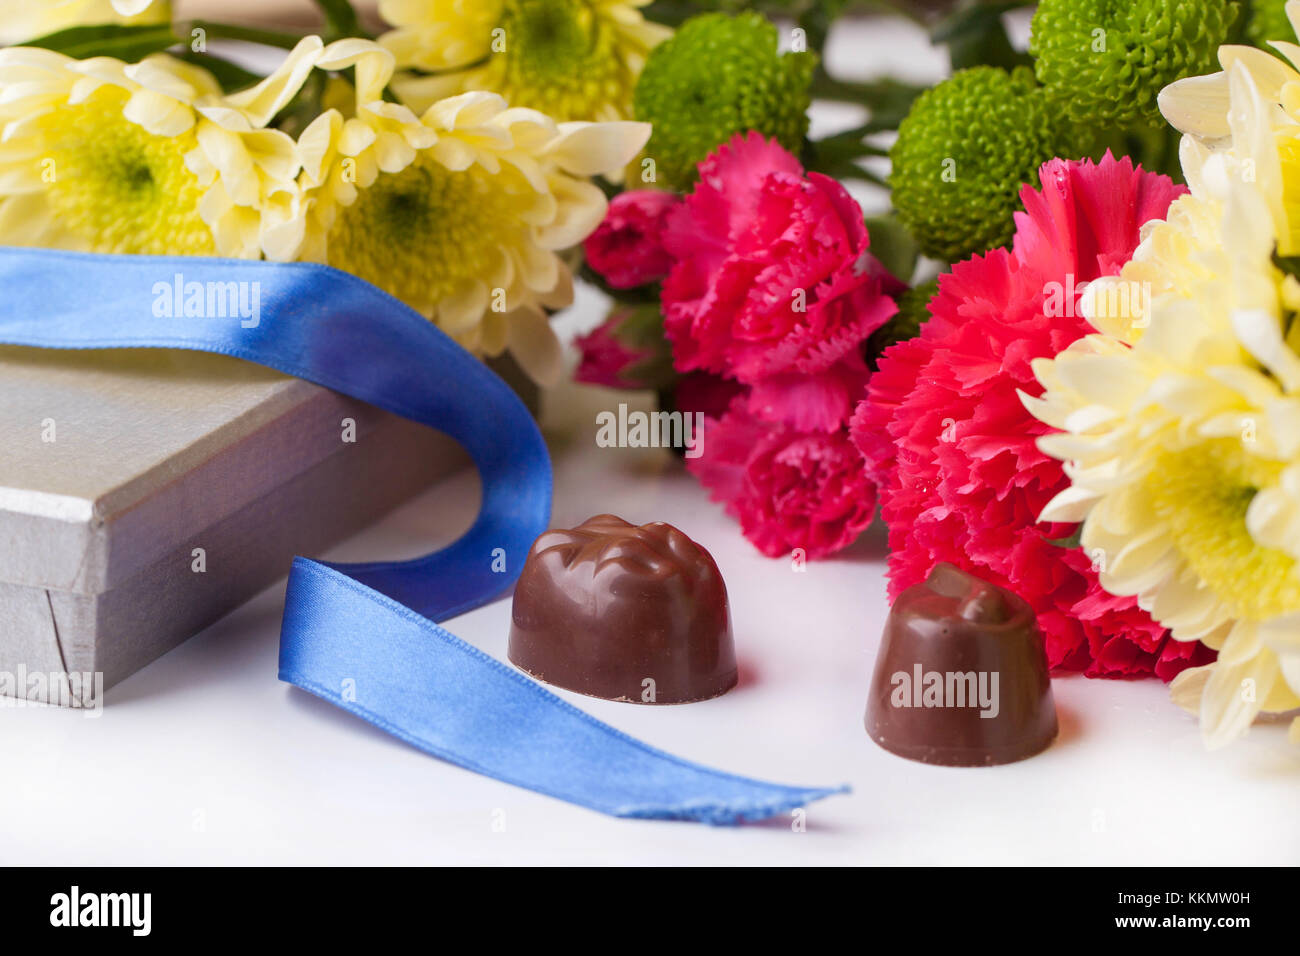 Black And White Chocolate Candies And Bouquet Of Carnation And Stock